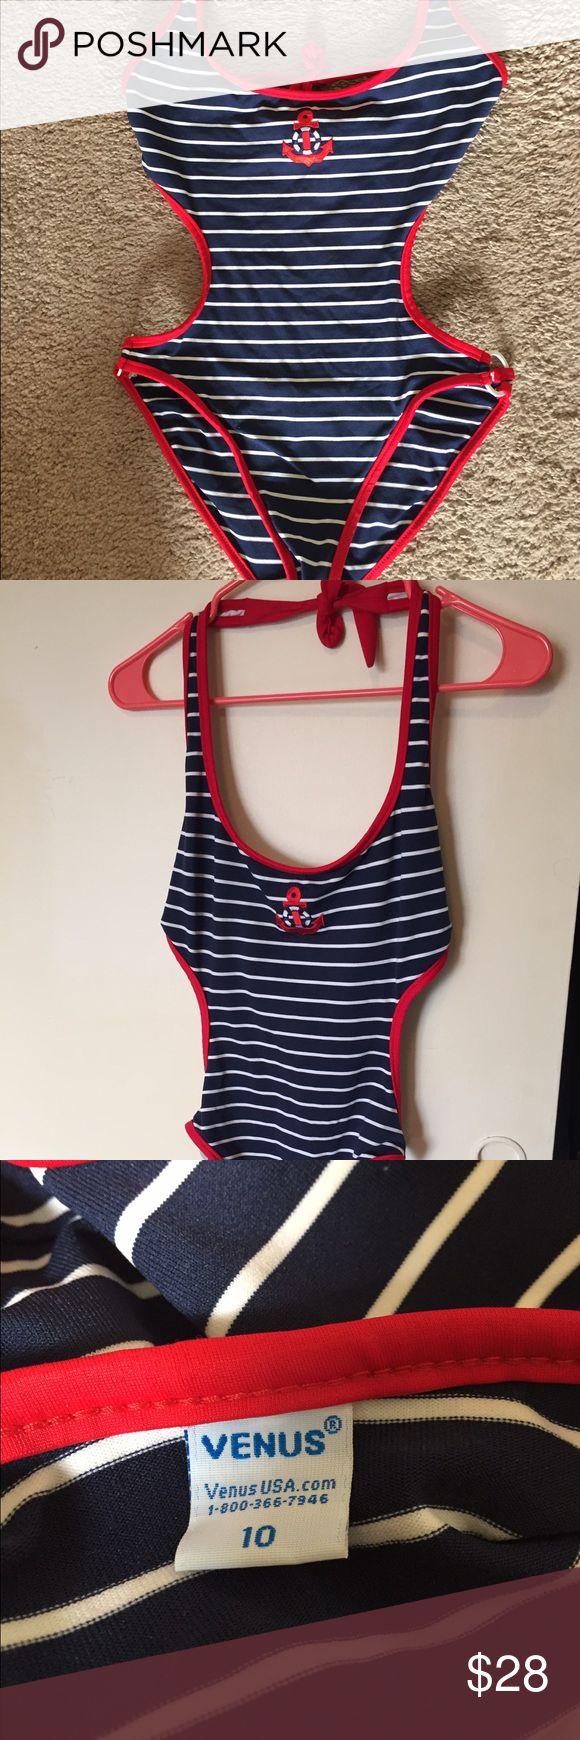 Nautical Striped Monokini One Piece Swim Size 10 This one piece Monokini swimsuit/bathing suit is a nautical navy and white stripe with red accents and an embroidered anchor. Size 10. Ties in the back and around the neck. Has white circular metal prices on either side of the waist. Venus Swim One Pieces